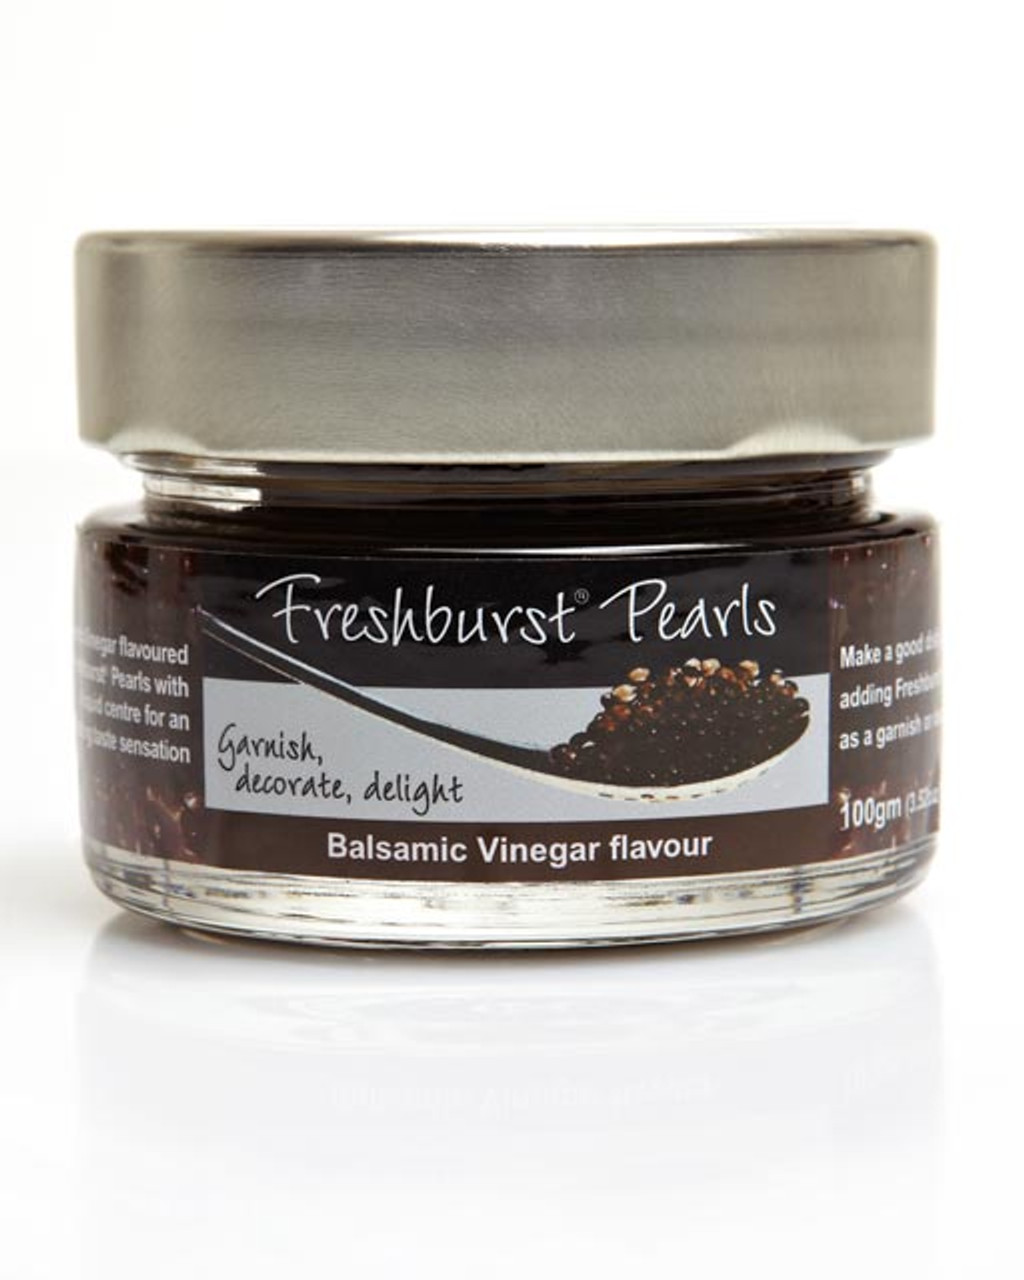 Freshburst Pearls Balsamic Vinegar 100g